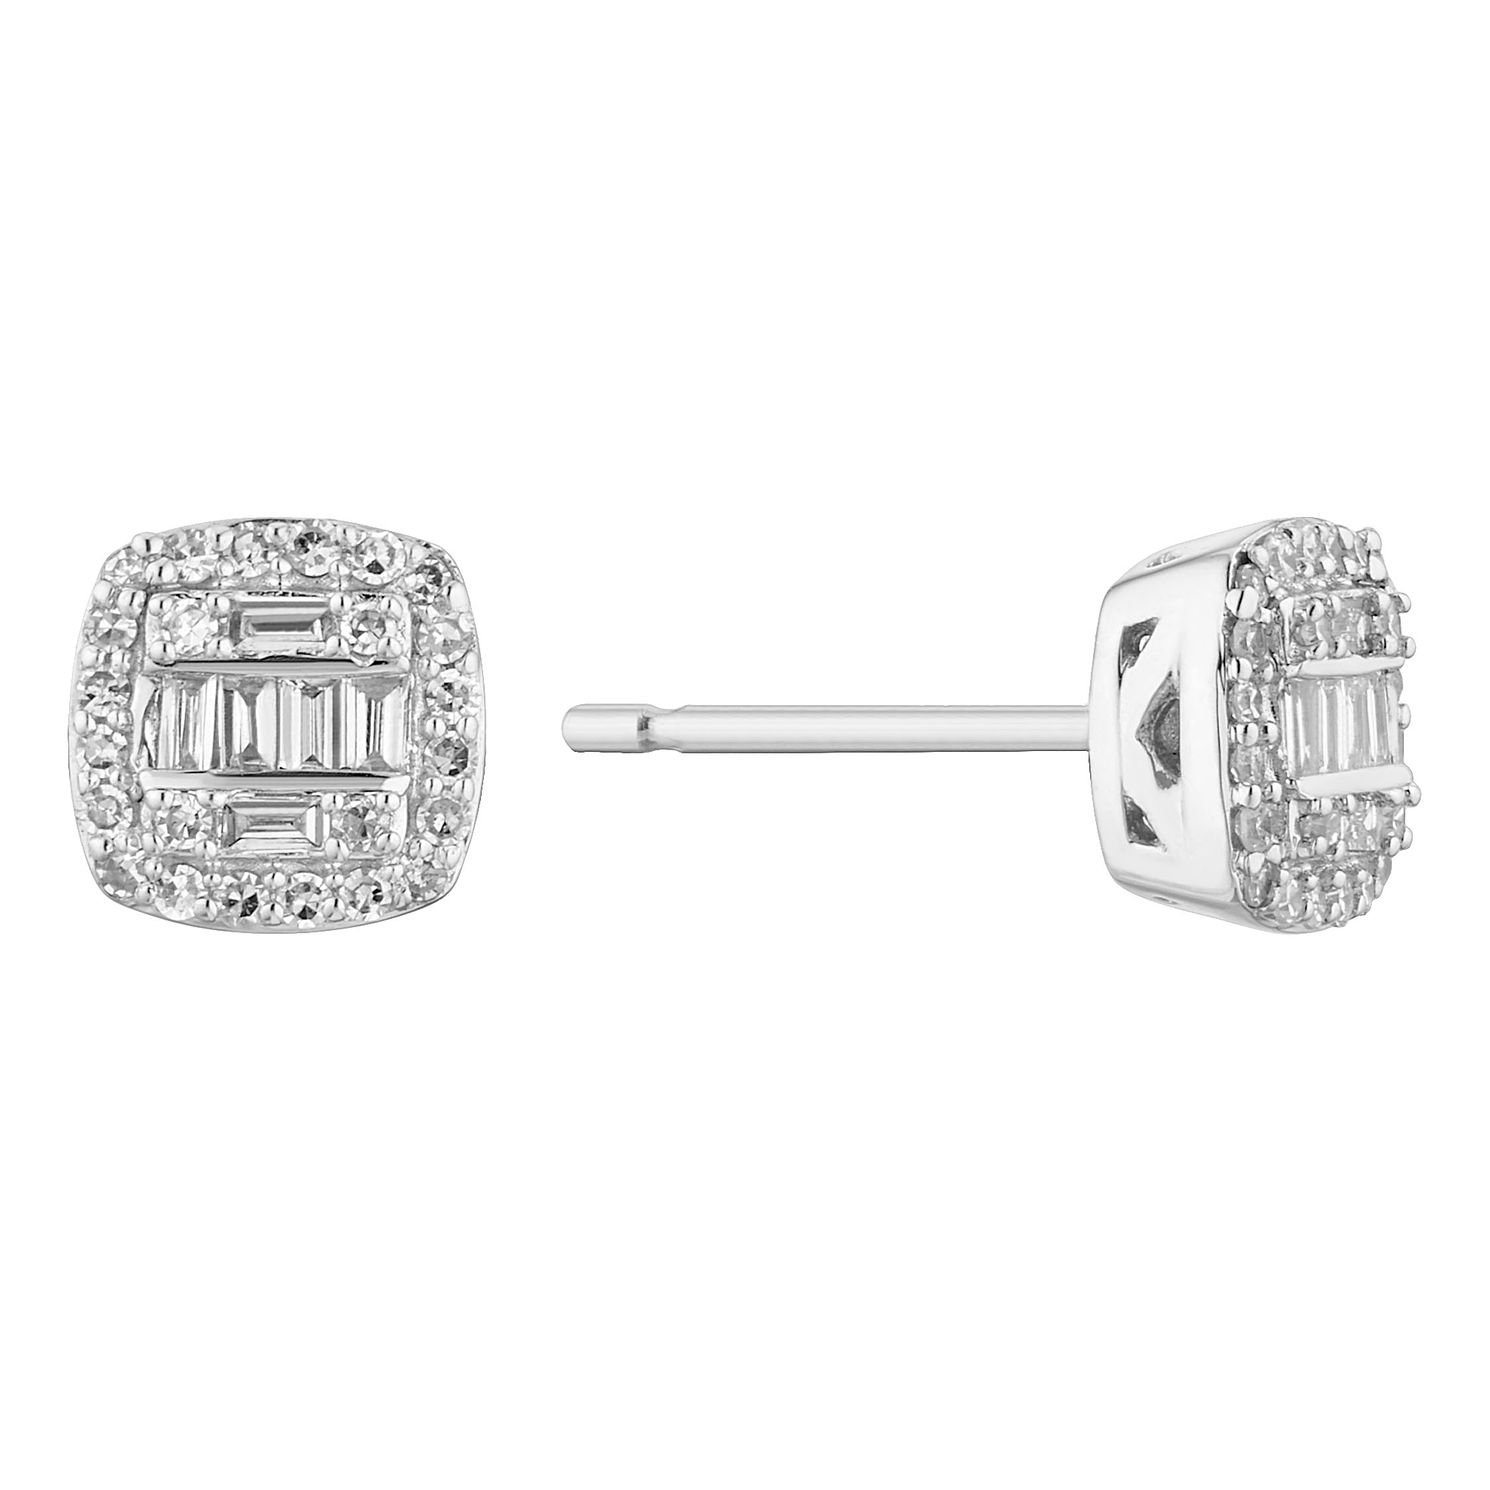 9ct White Gold 0.20ct Total Diamond Baguette Stud Earrings - Product number 1150421